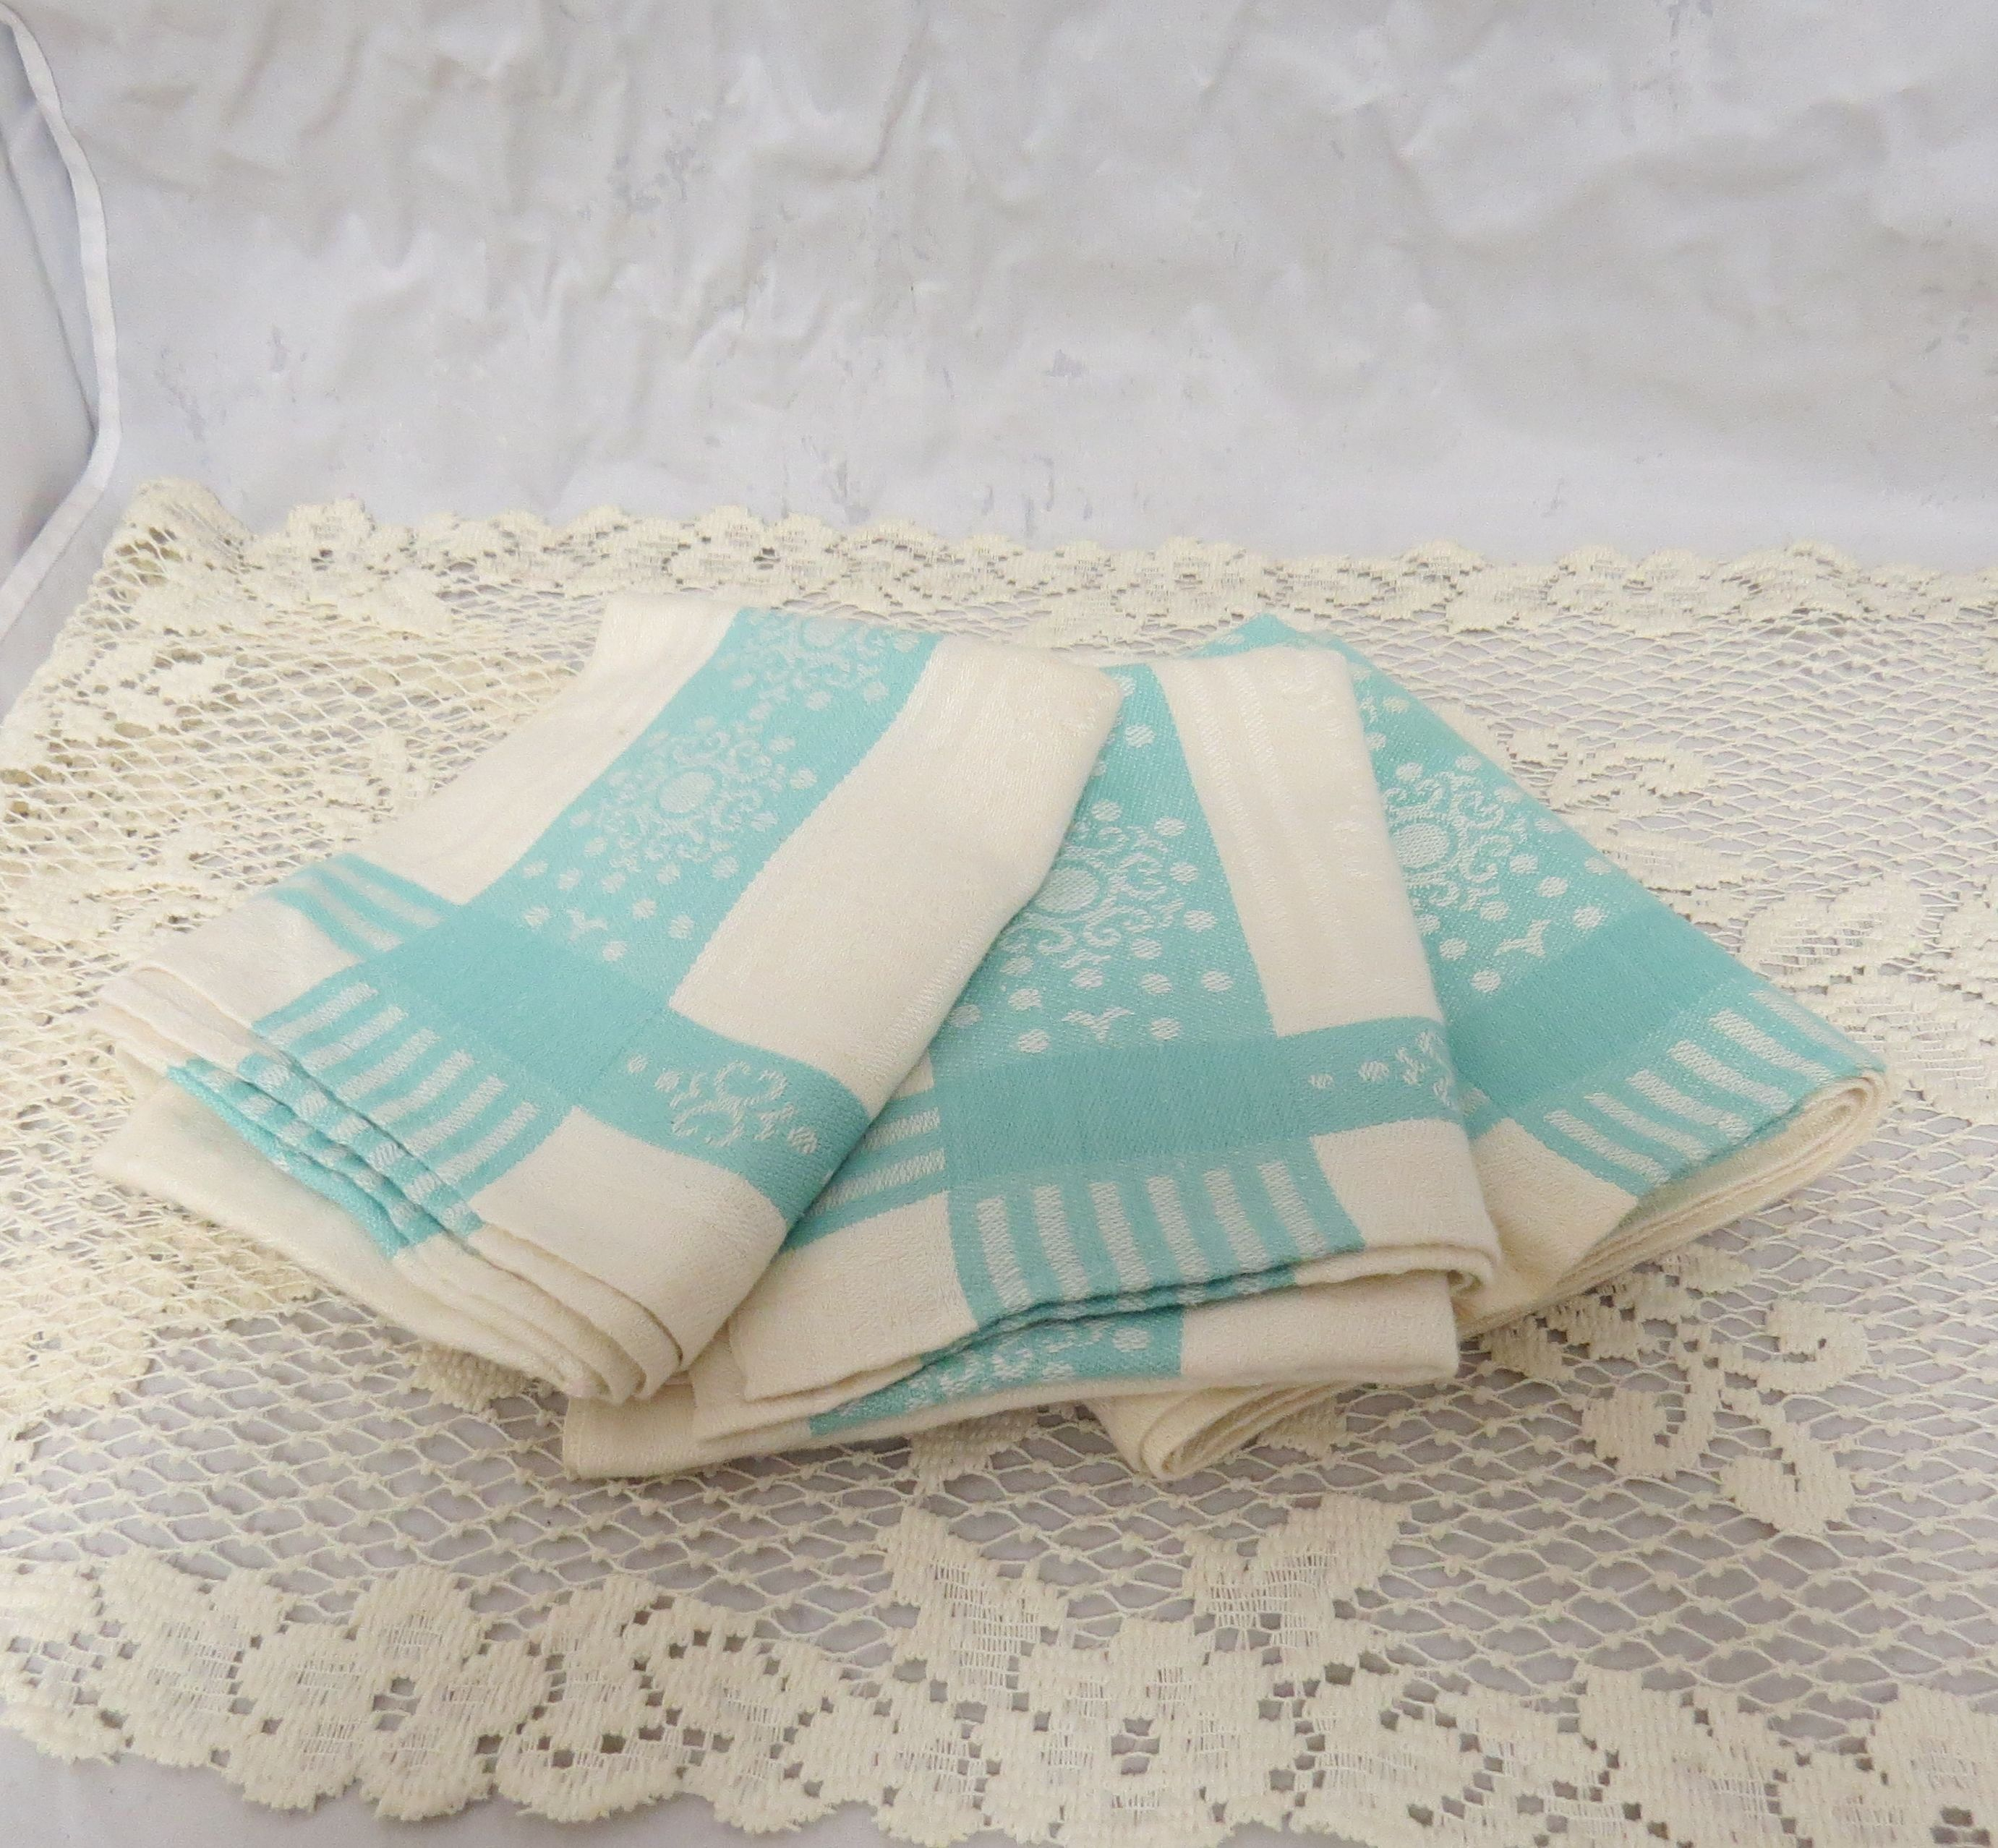 Vintage Large Damask Cotton Cup Towels Hand Sewn Hand Stitched Handcrafted Turquoise White Dish Towels Tea Towels Kitchen Towels Cotton Hand Towels Vintage Linens Hand Sewing